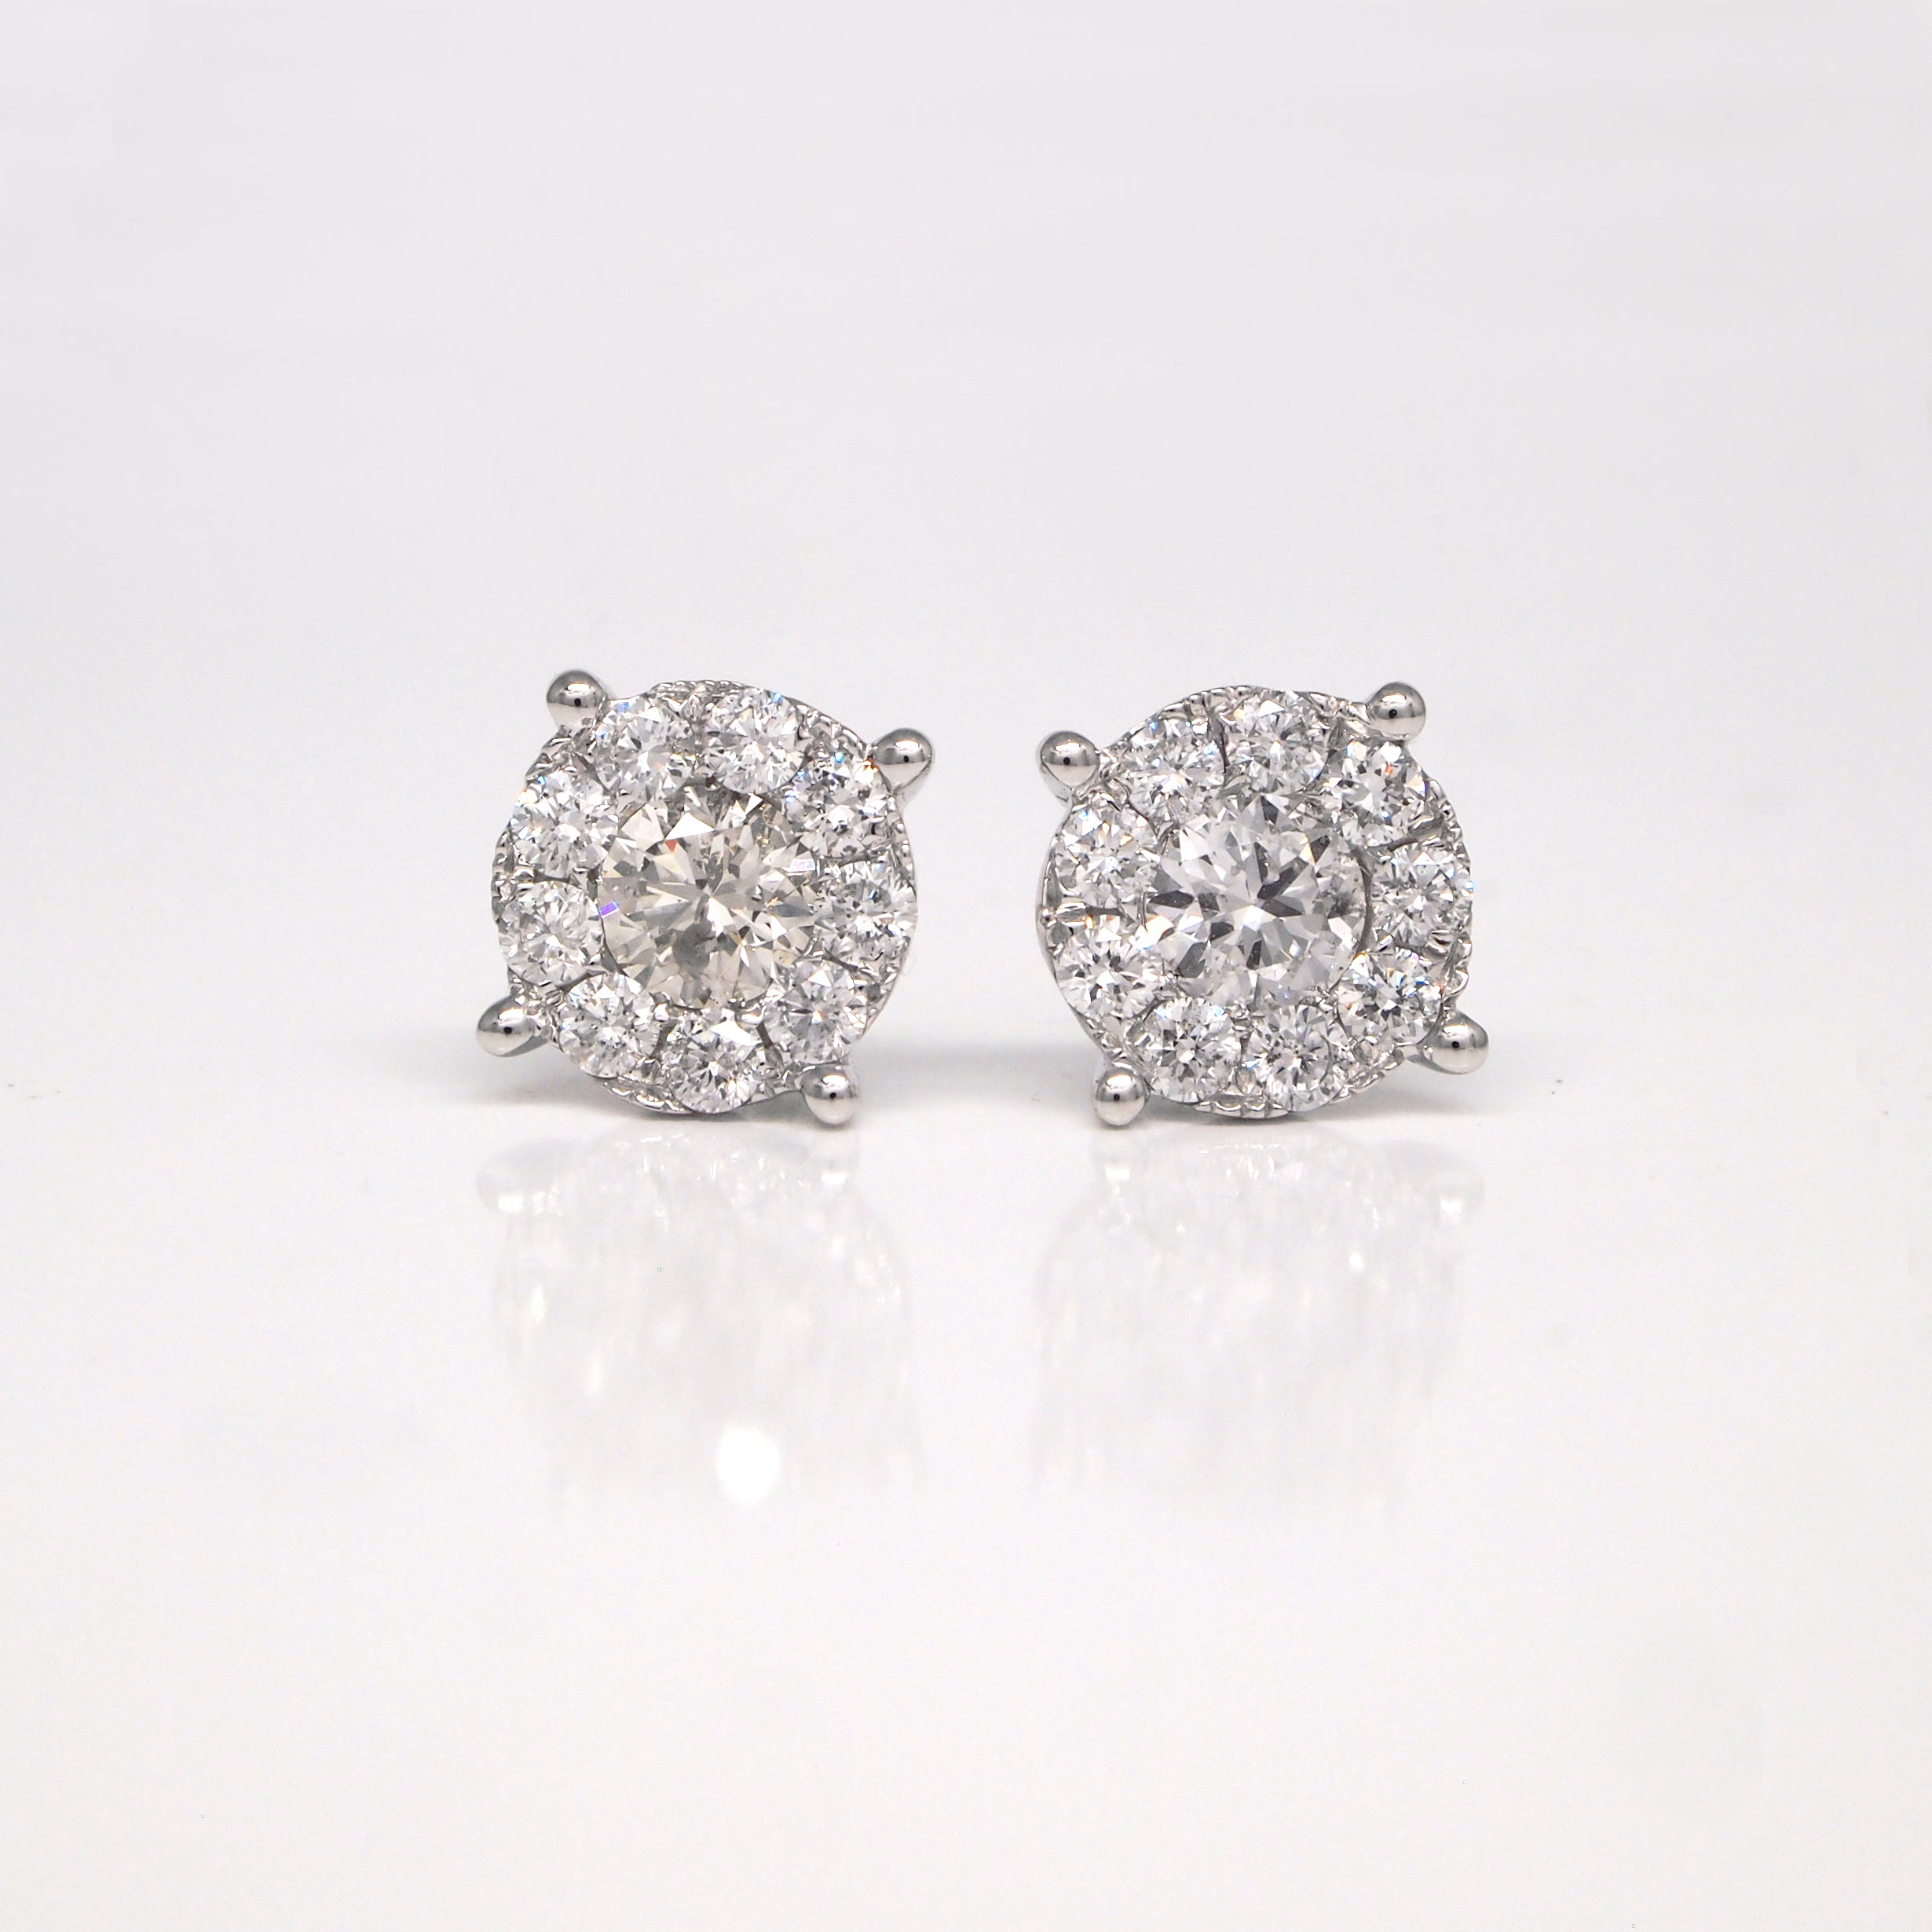 tw style in martini gold earrings white diamond stud